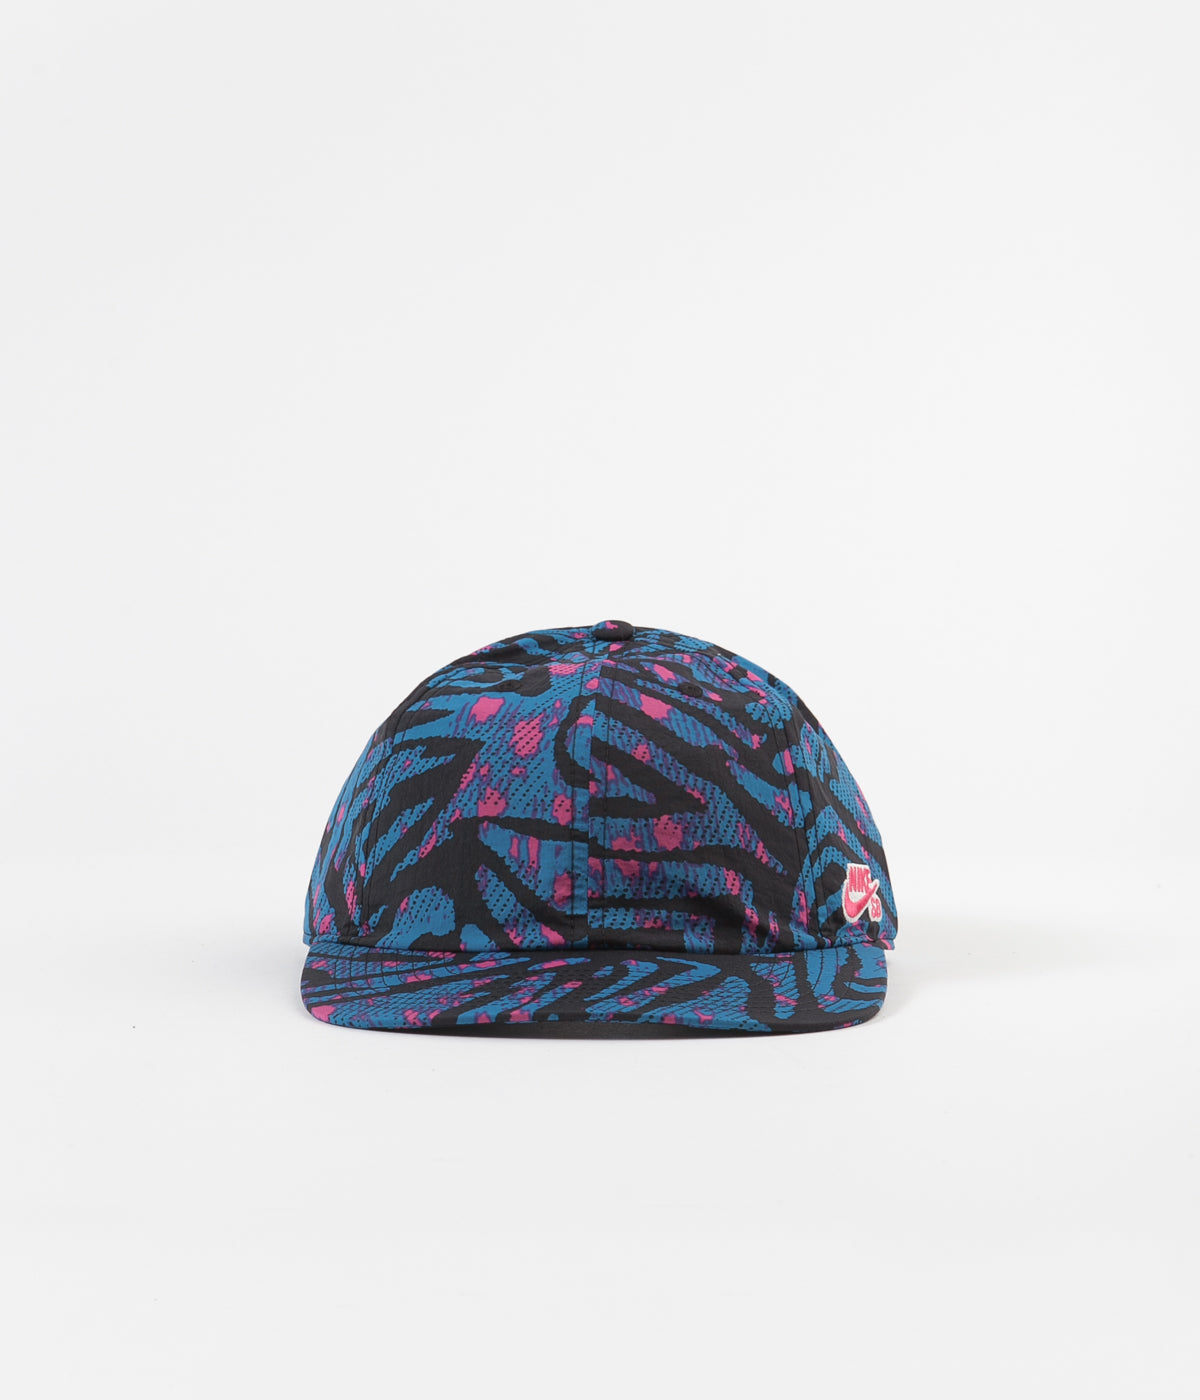 Nike SB Heritage86 All Over Print Cap - Laser Blue / Watermelon